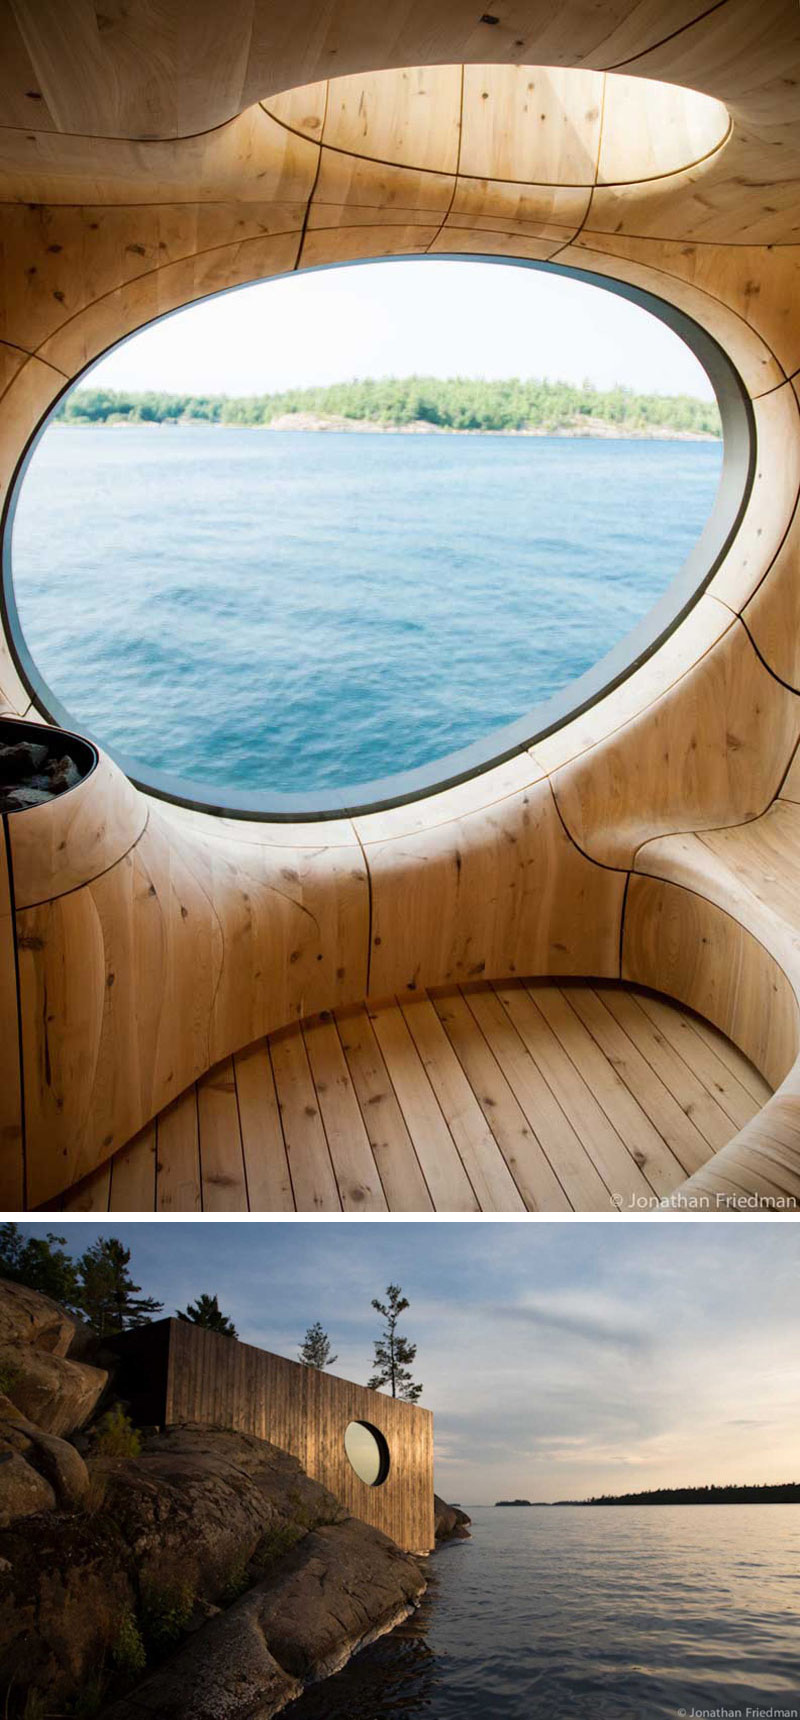 In this modern wood sauna, breathtaking views can be seen through the rounded window, while light from above is provided through another round window.